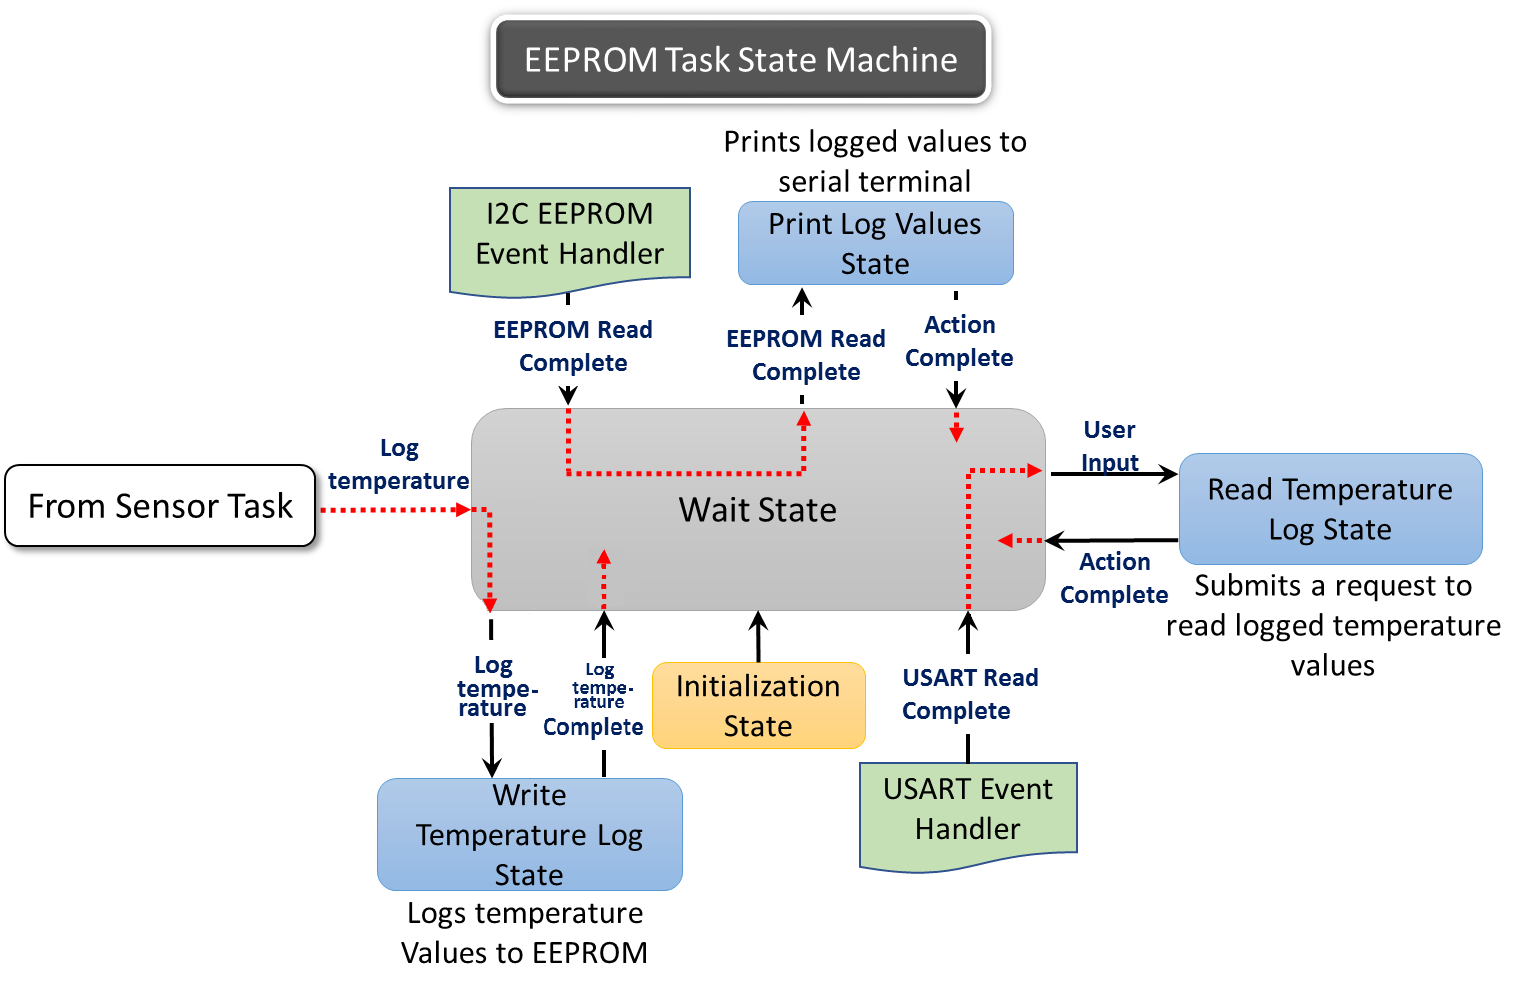 eeprom_task_state_machine1.png